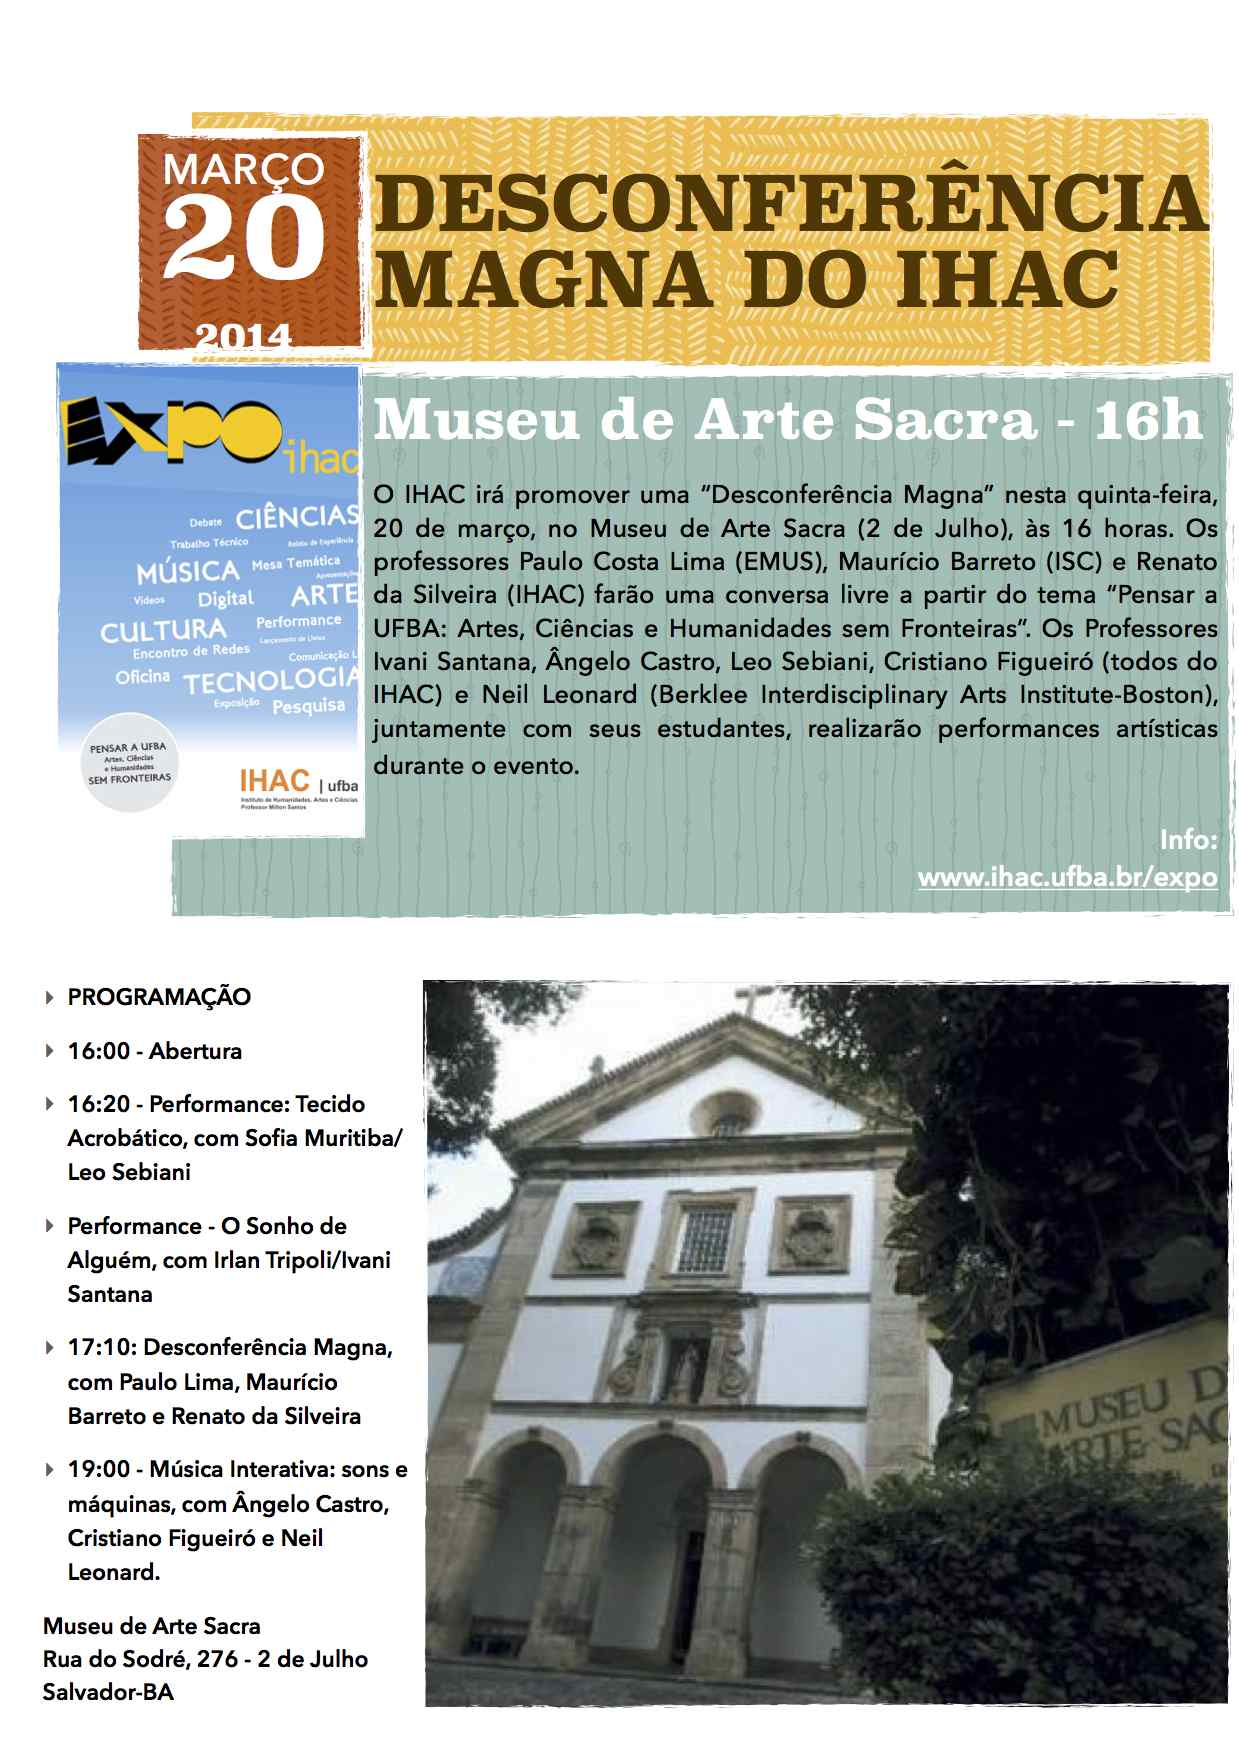 Desconferência Magna do IHAC no Museu de Arte Sacra